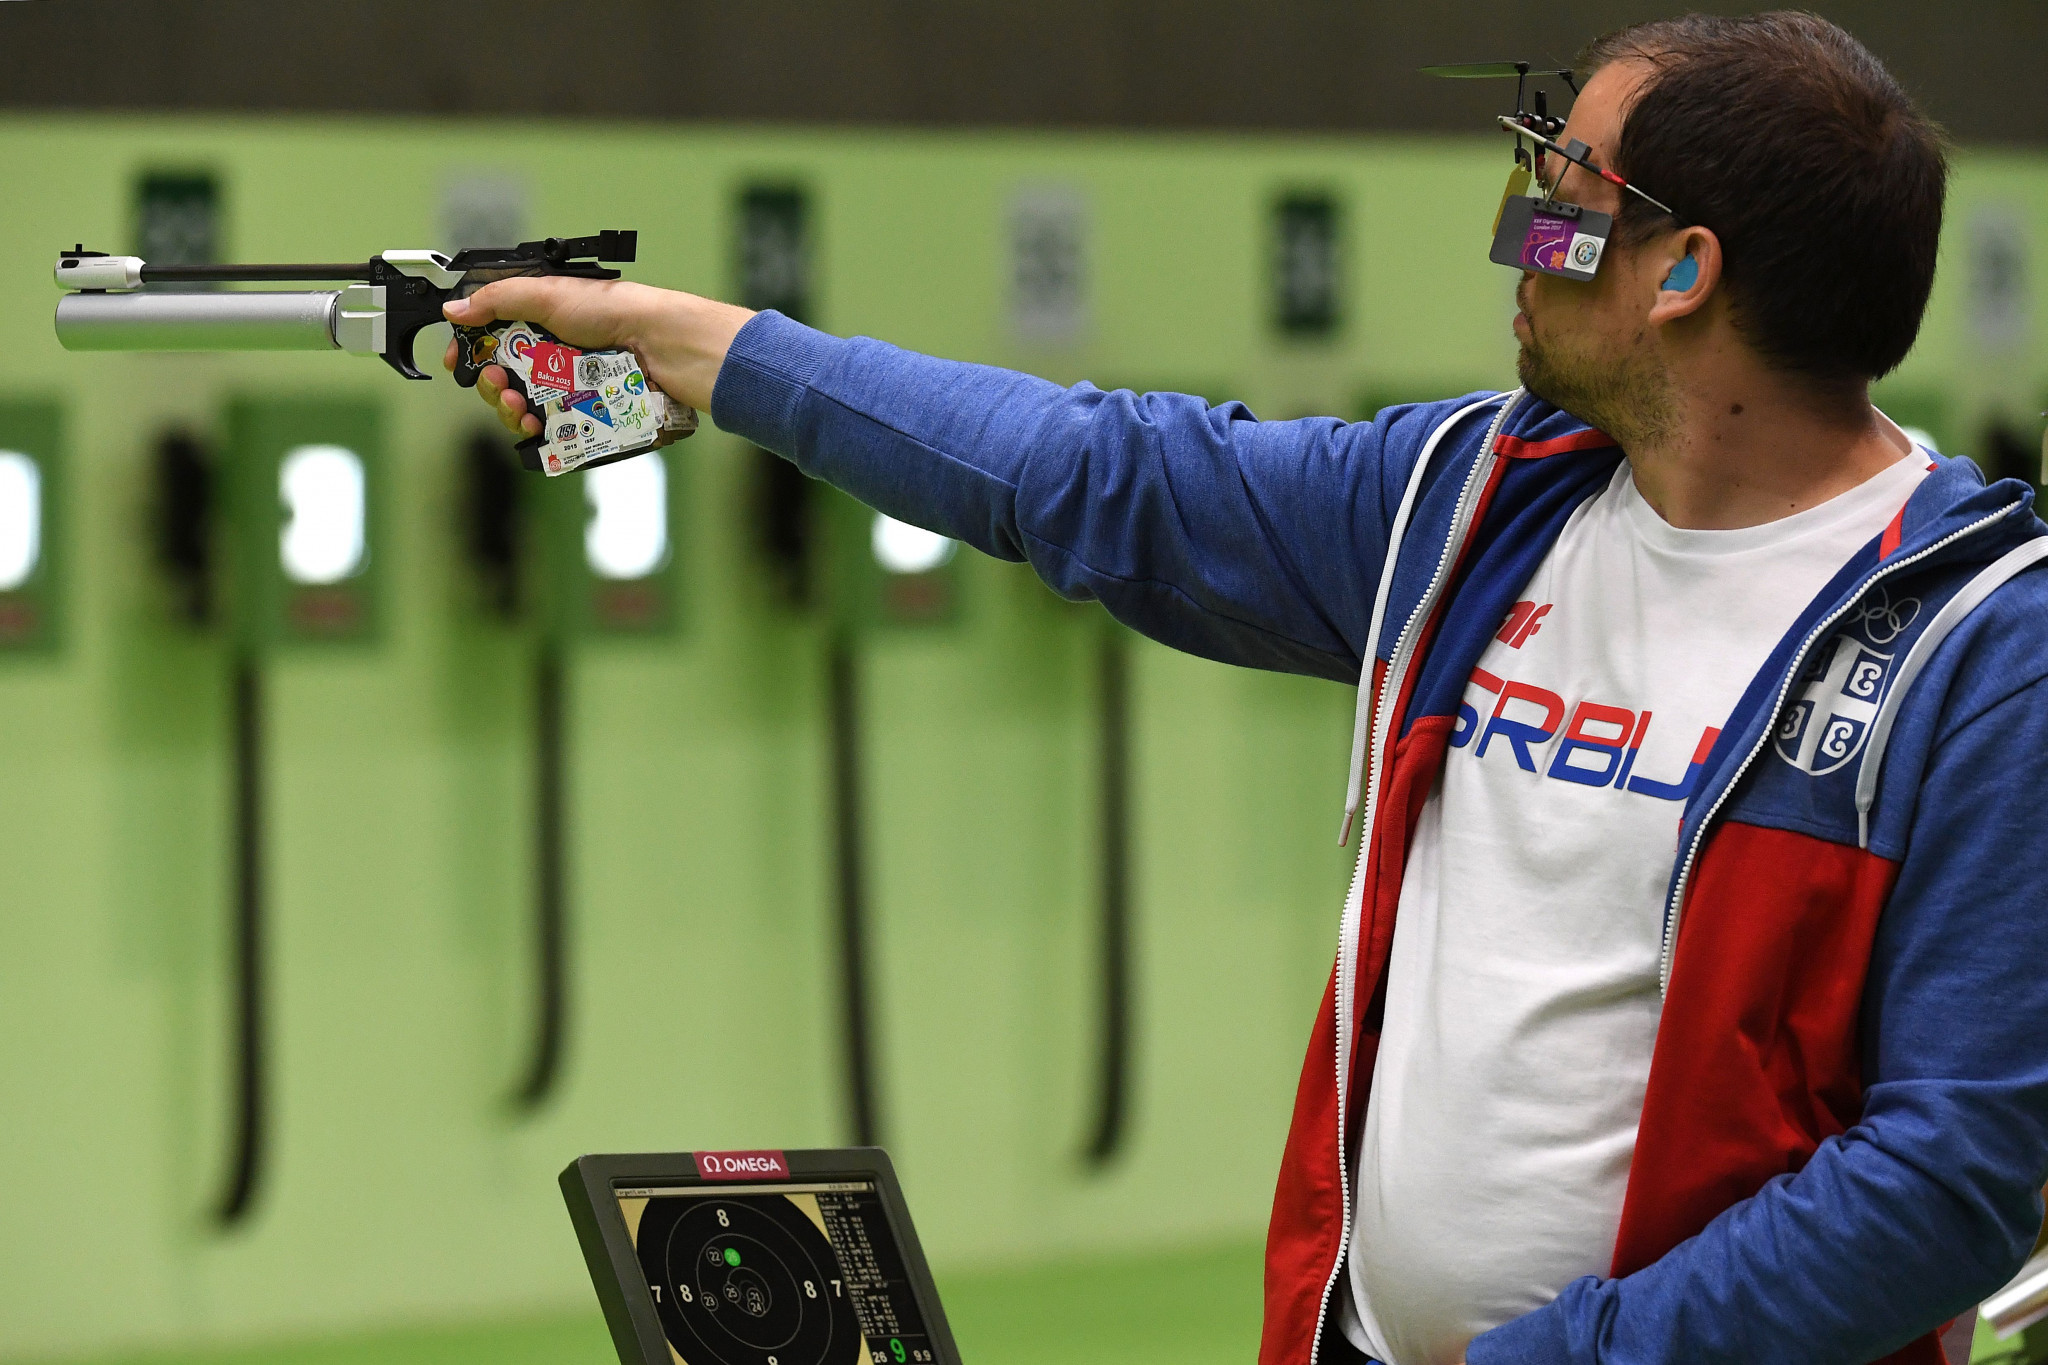 The 10m air pistol is set to be among the shooting disciplines staged in Croatia in May ©Getty Images